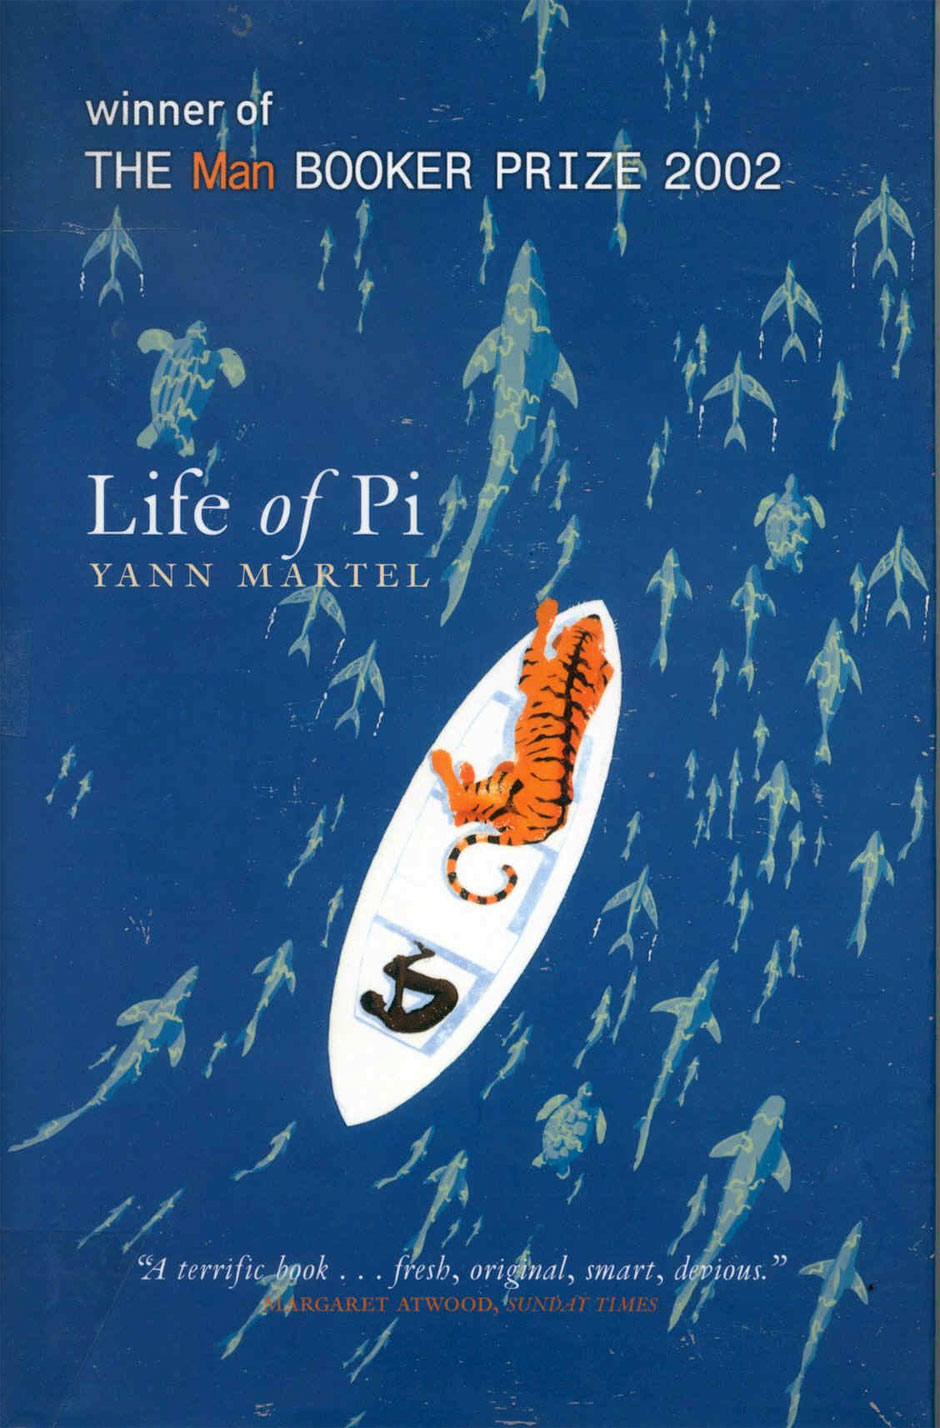 life-of-pie-book-cover.jpg